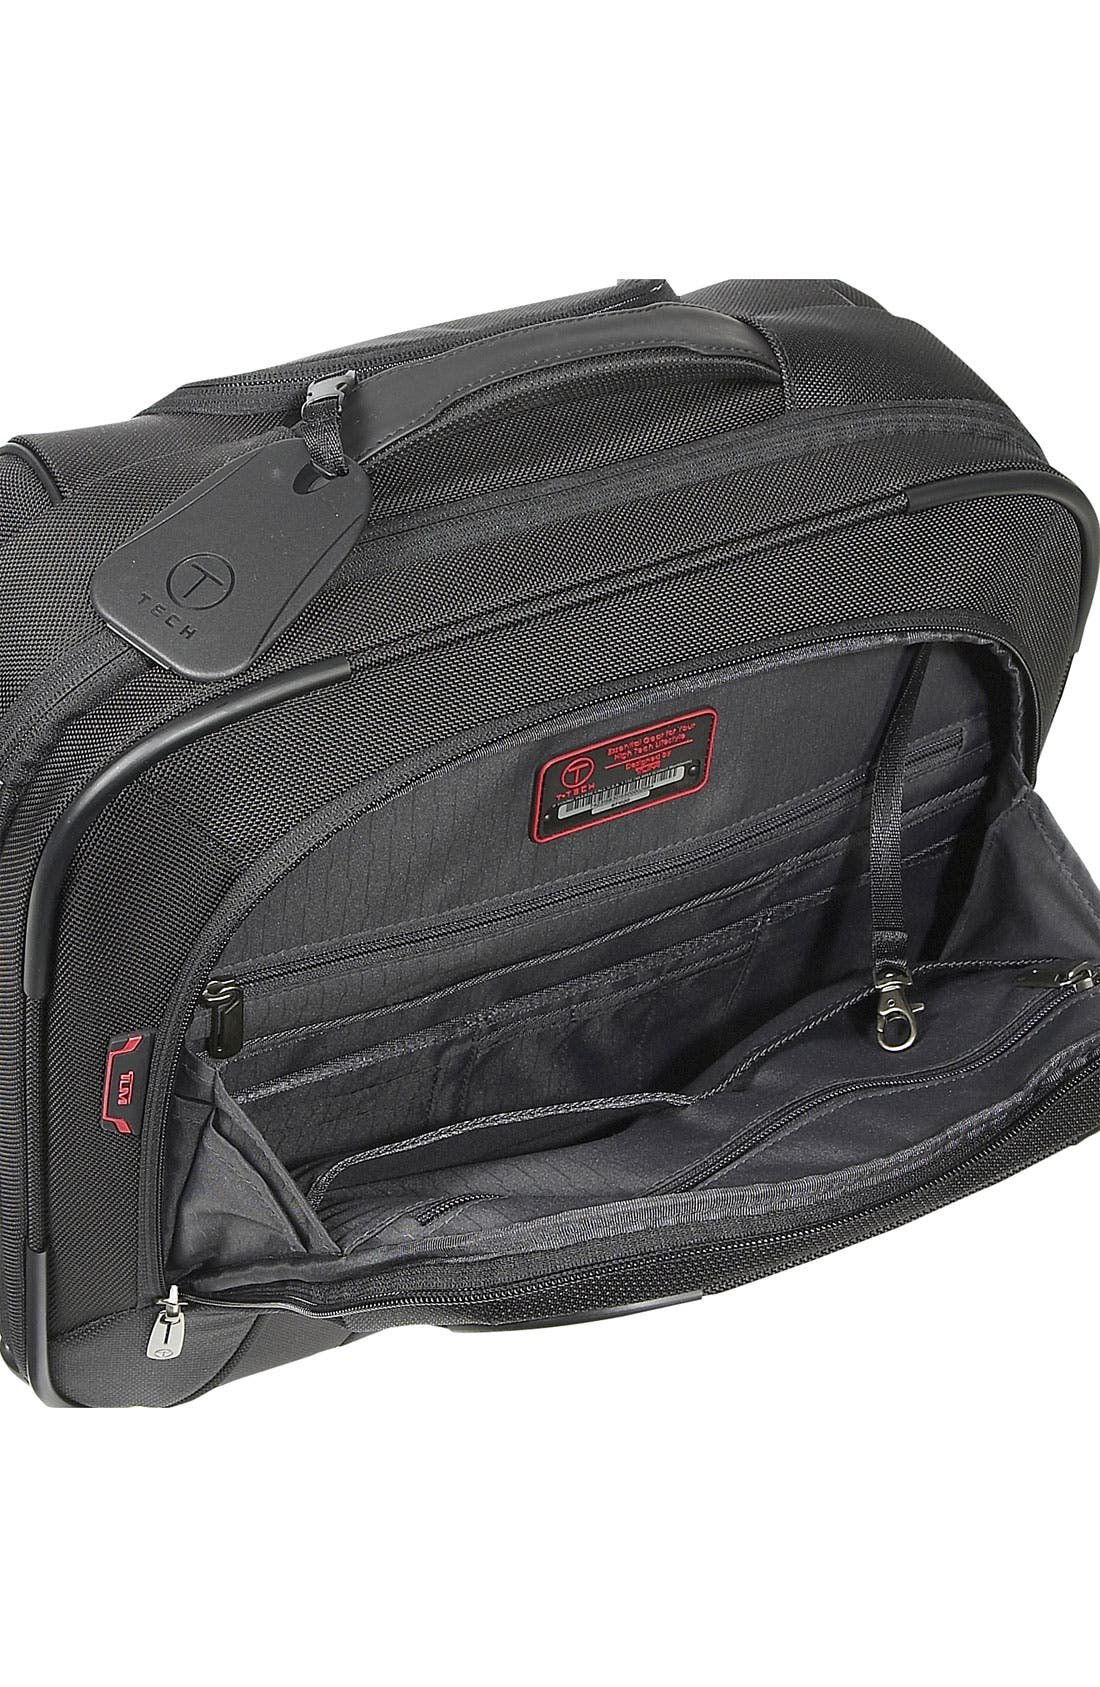 Alternate Image 4  - T-Tech by Tumi 'Presidio MacArthur' Wheeled Compact Laptop Briefcase